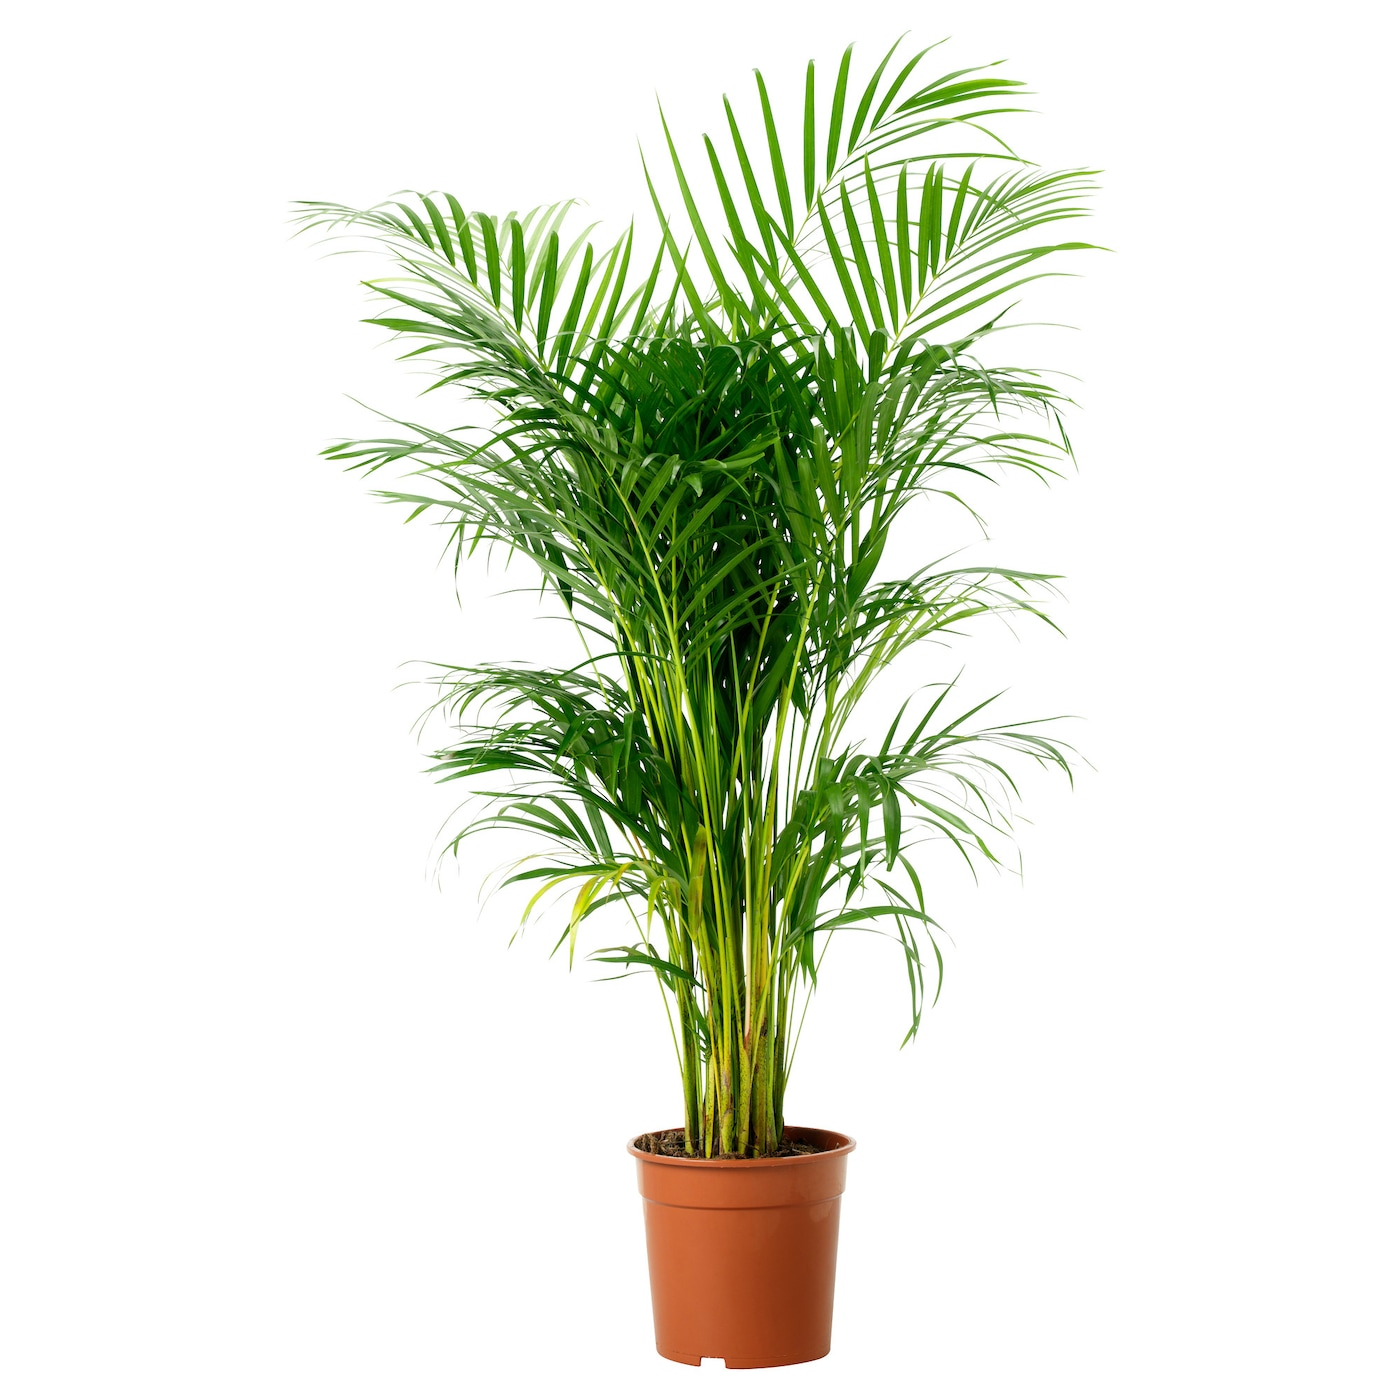 Ordinaire IKEA CHRYSALIDOCARPUS LUTESCENS Potted Plant